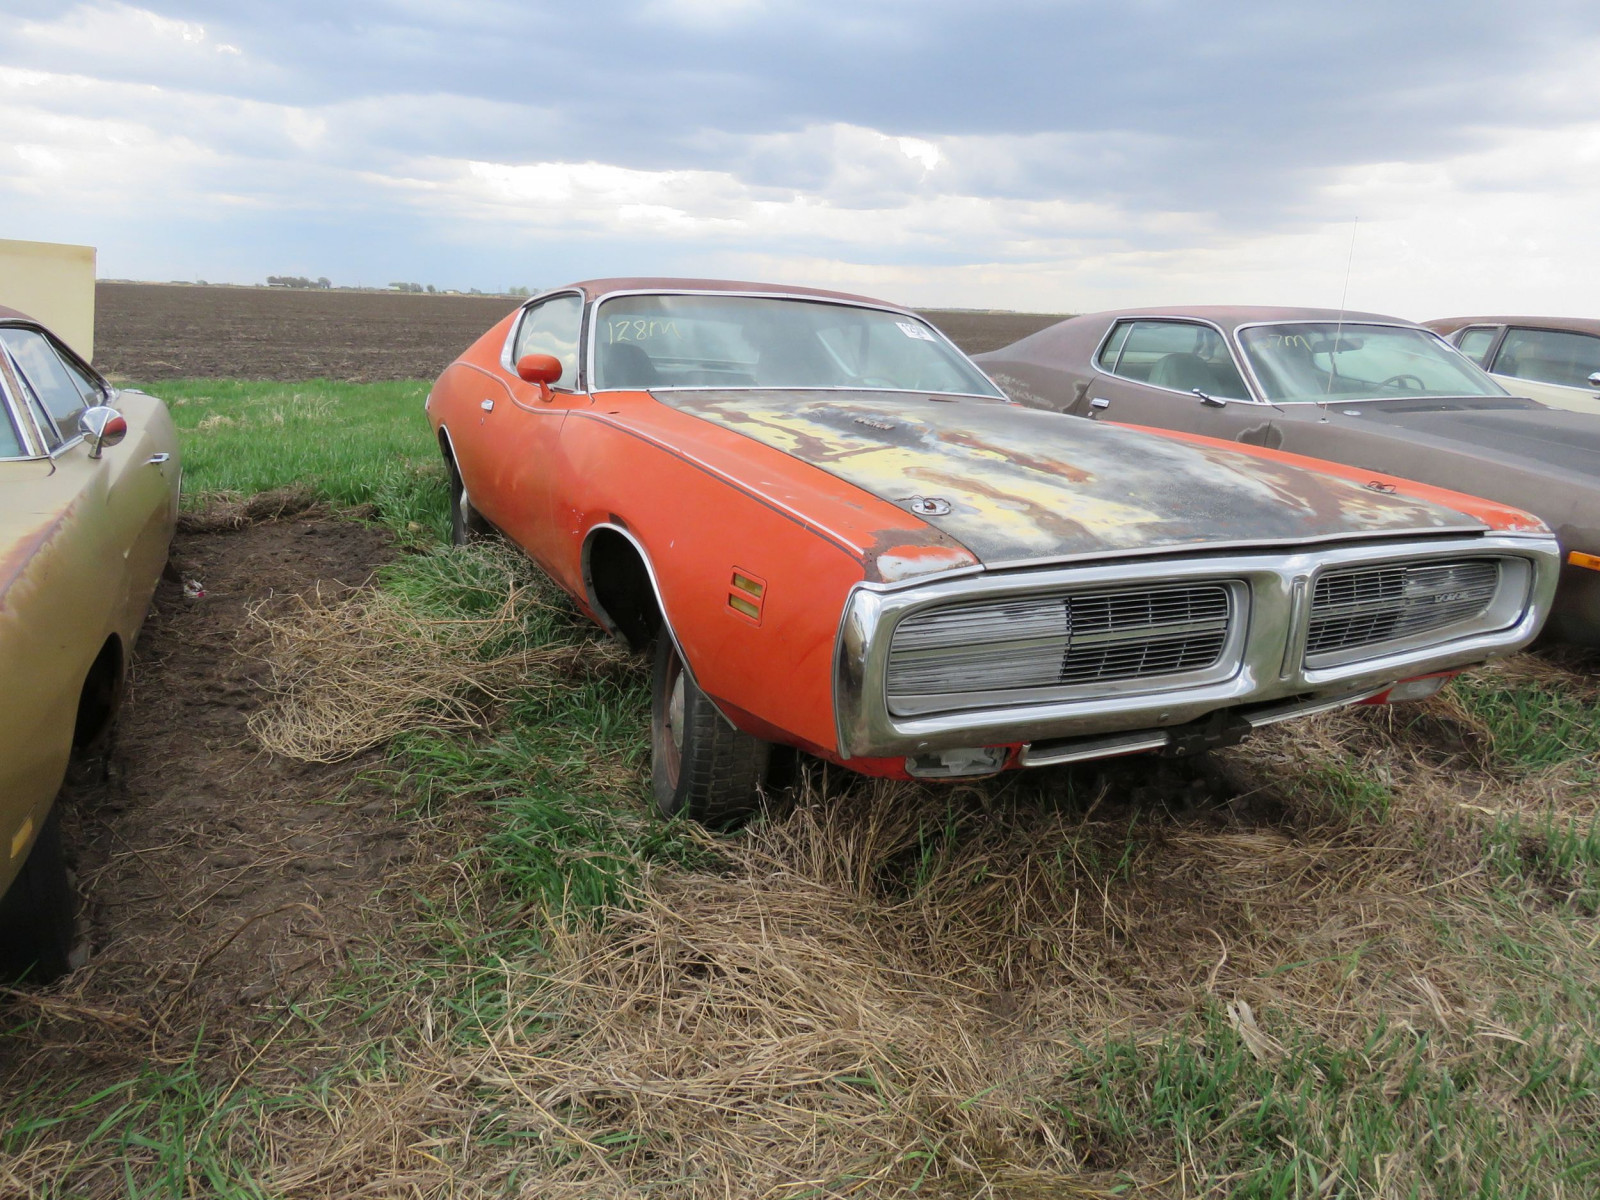 1971 Dodge Charger Coupe - Image 3